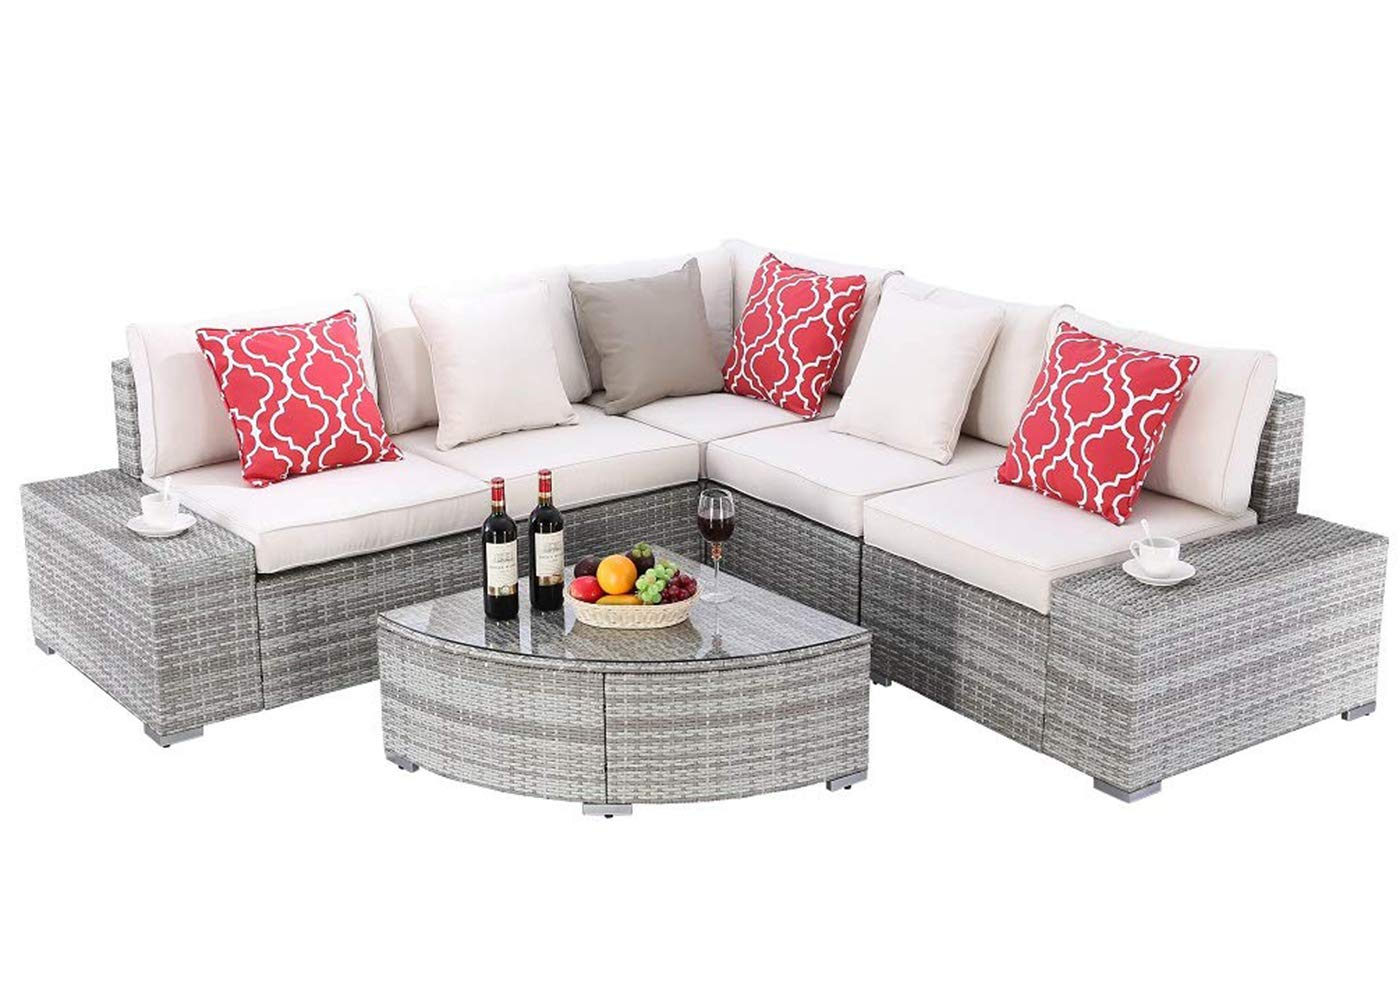 Do4U 6 Pieces Outdoor Patio Furniture Sectional Conversation Set, All-Weather Wicker Rattan Sofa Beige Seat Back Cushions Grey